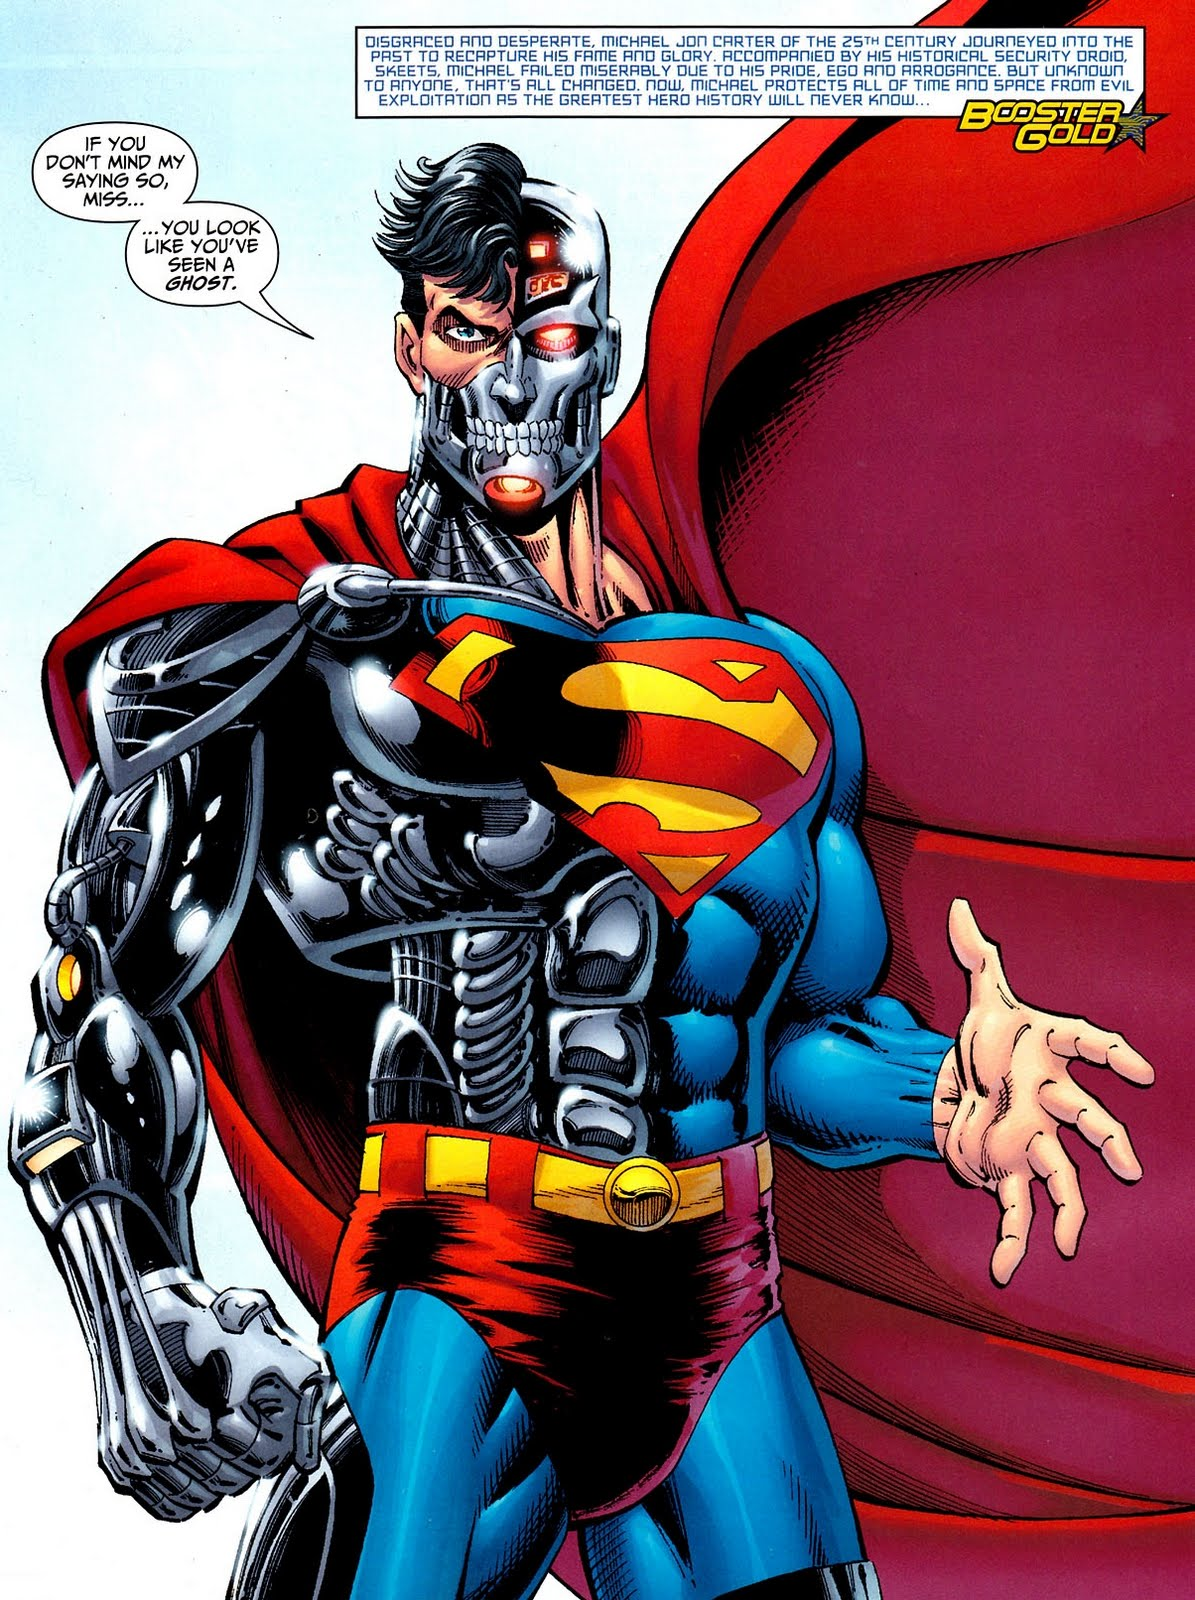 With His Organic Parts Genetically Identical To Supermans Many Believed That The Cyborg Truly Was Last Son Of Krypton Restored Life After Dying In